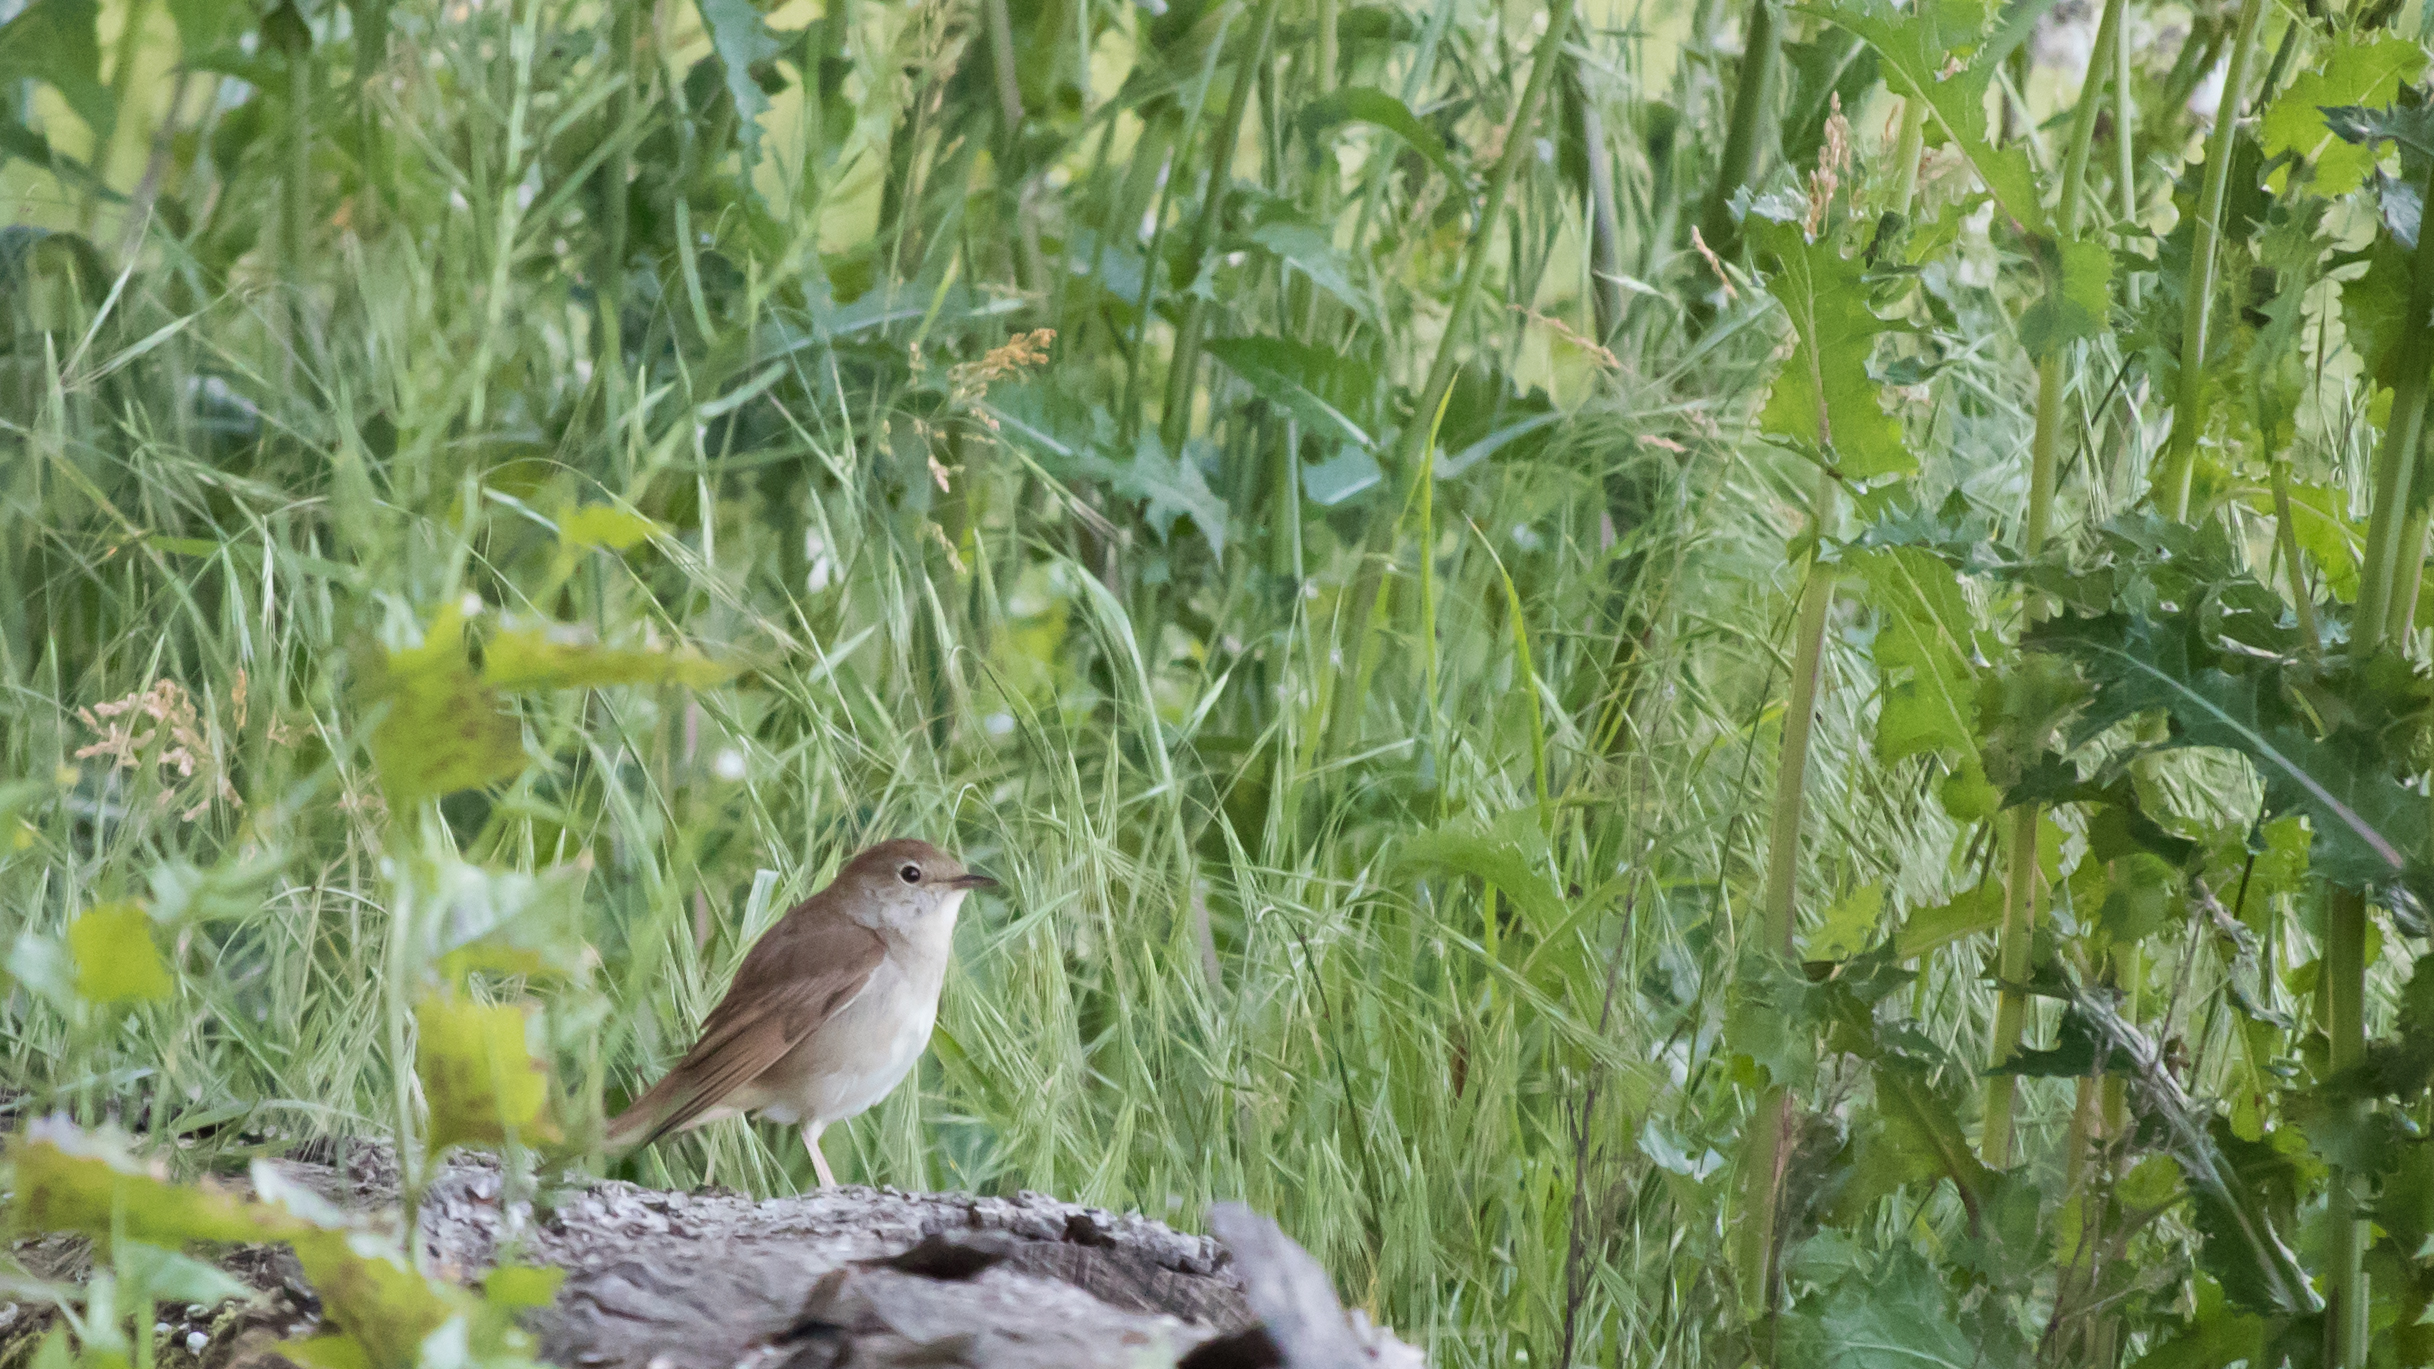 Nightingale (Luscinia megarhynchos) at Marais de Sionnet, Switzerland. May 2015. Not baited. Not called in.